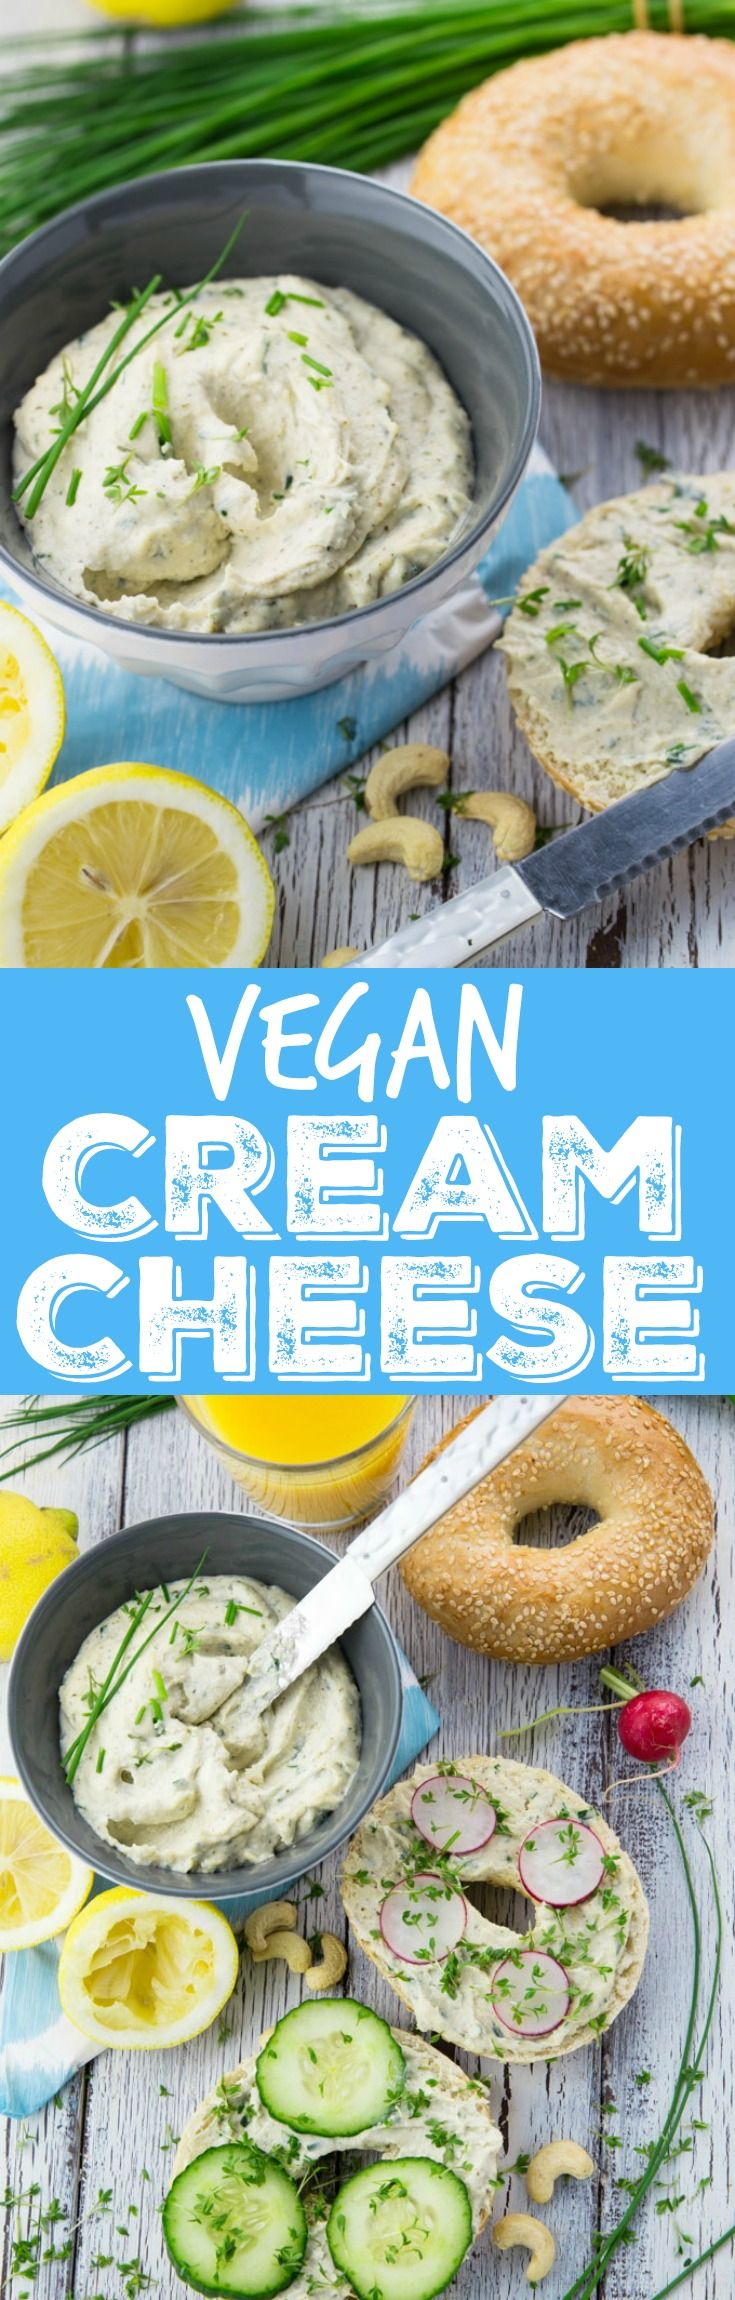 Kiss your dairy products goodbye and say hello to this delicious vegan cream cheese with garlic and fresh herbs. It's incredibly creamy and easy to make! My all-time favorite cashew cream cheese!